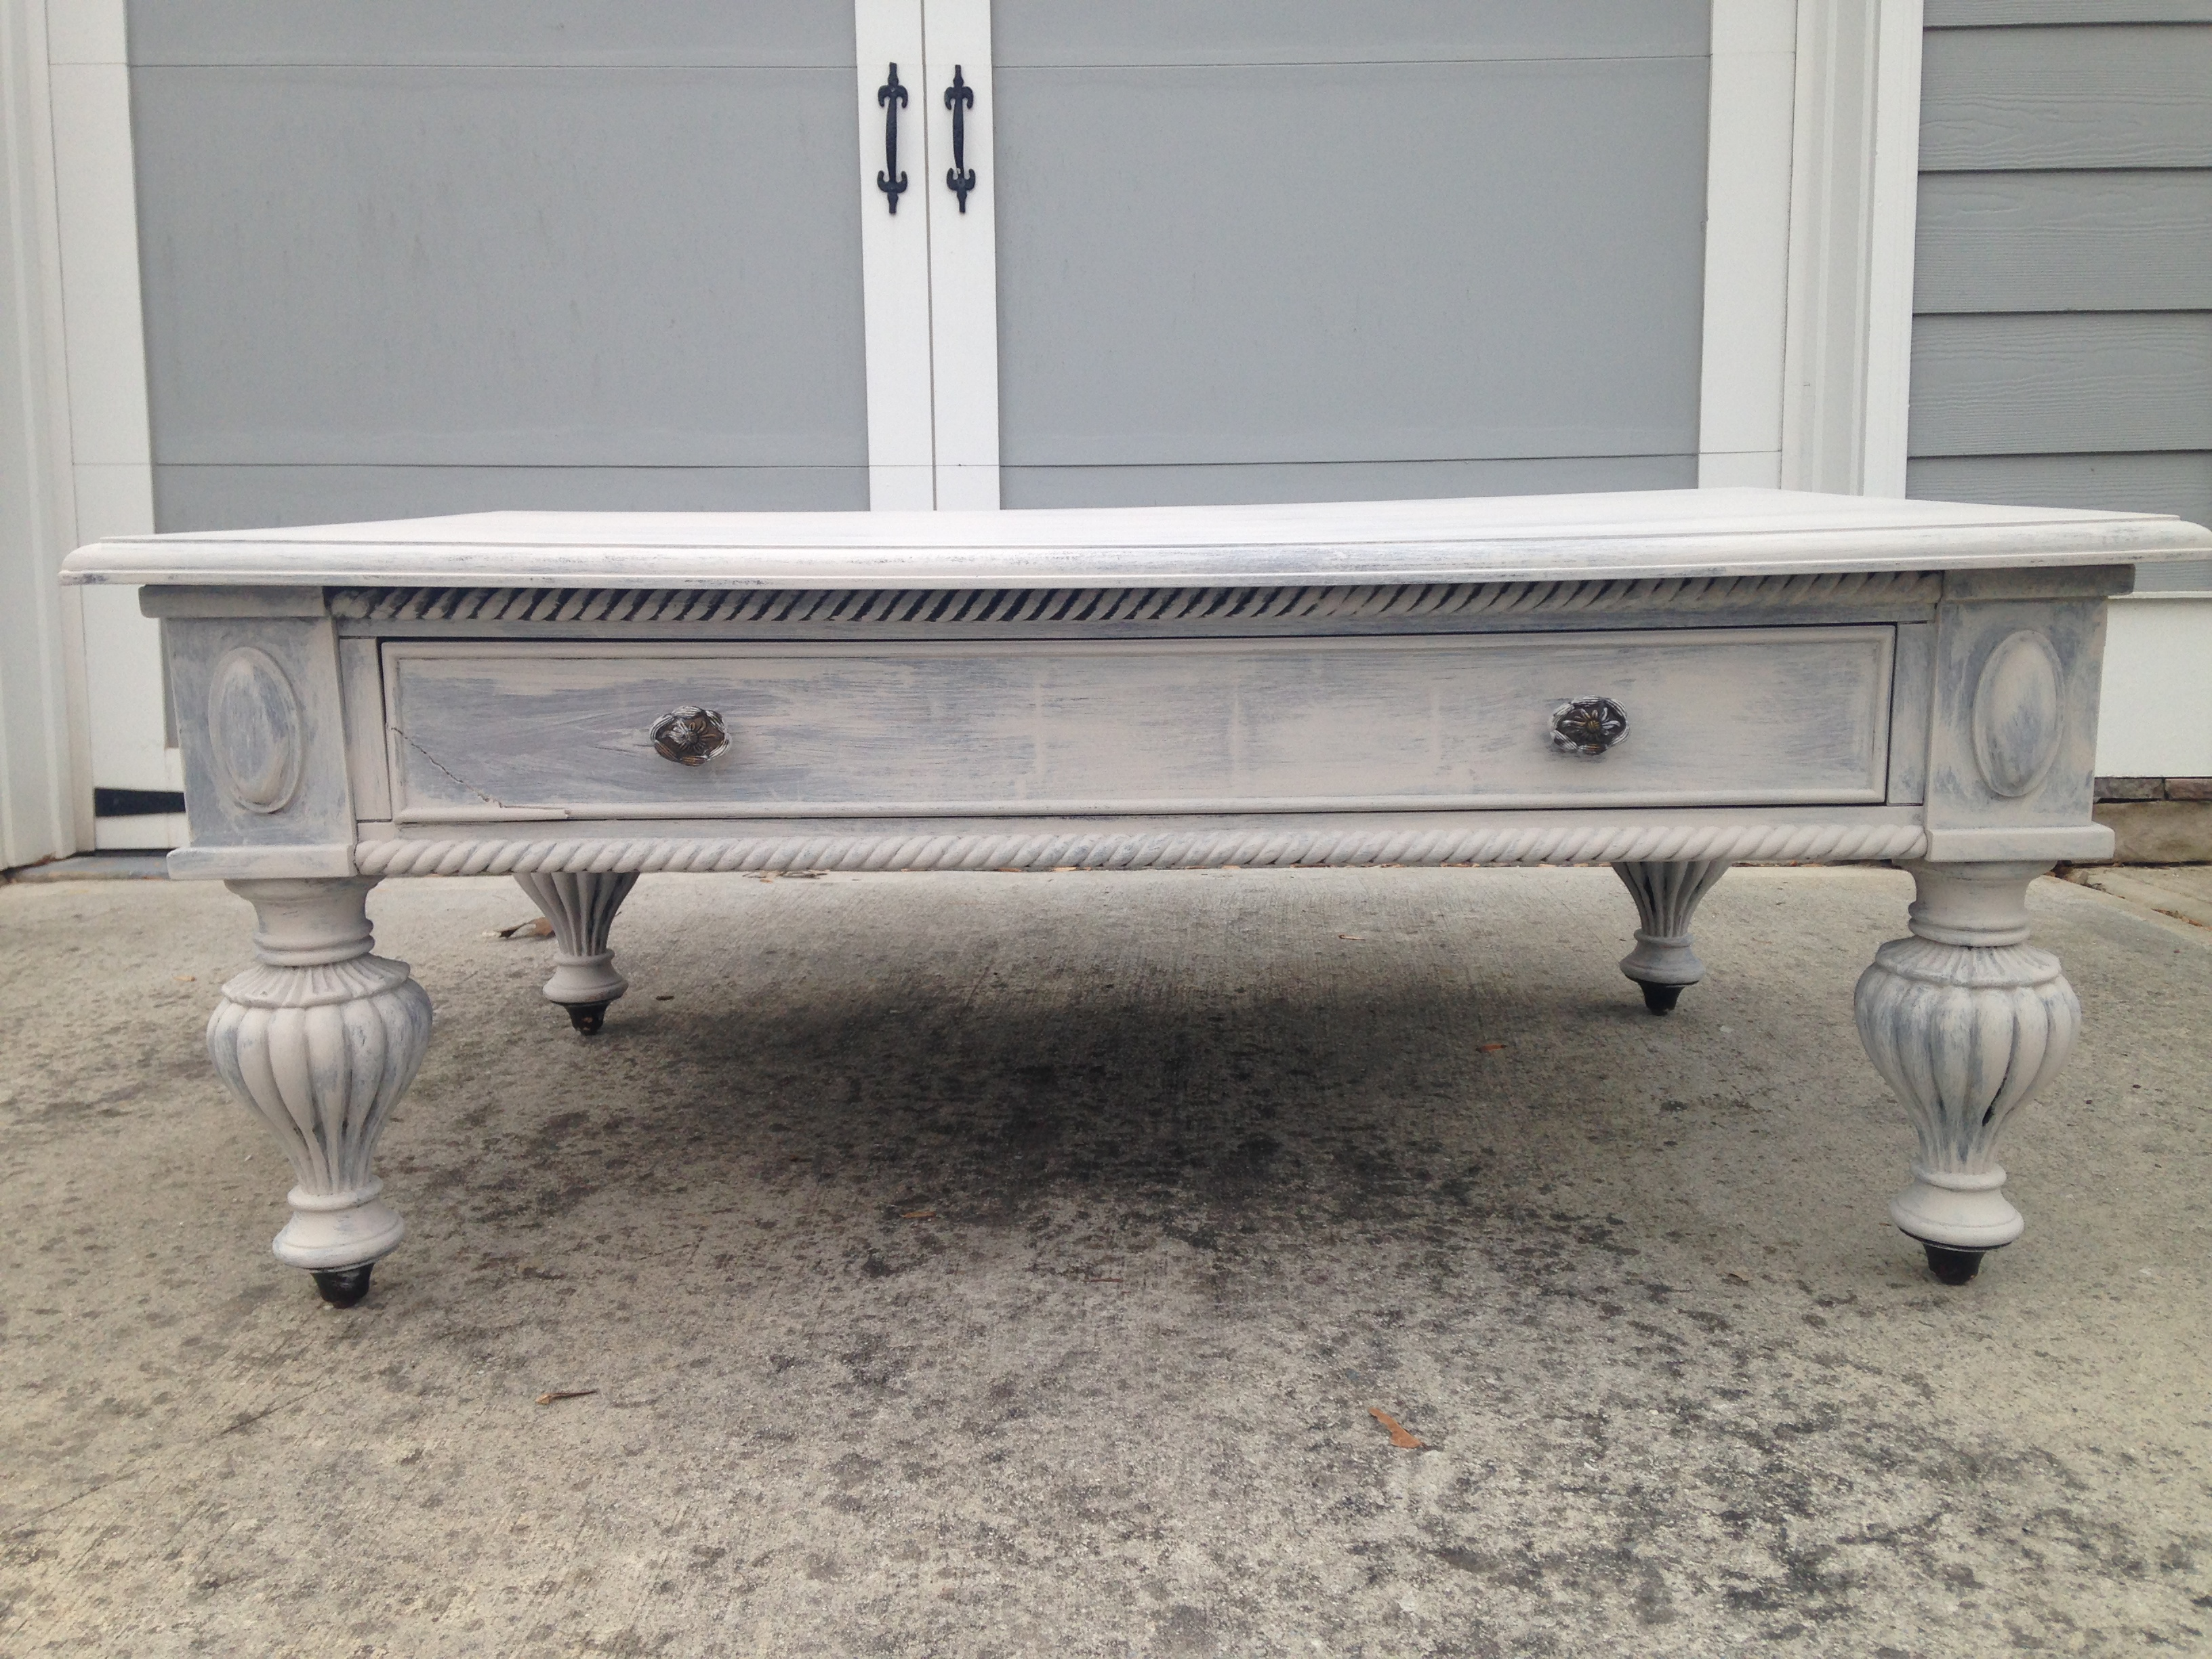 How To Rehab Old Furniture Using Chalk Paint Crockpot Empire